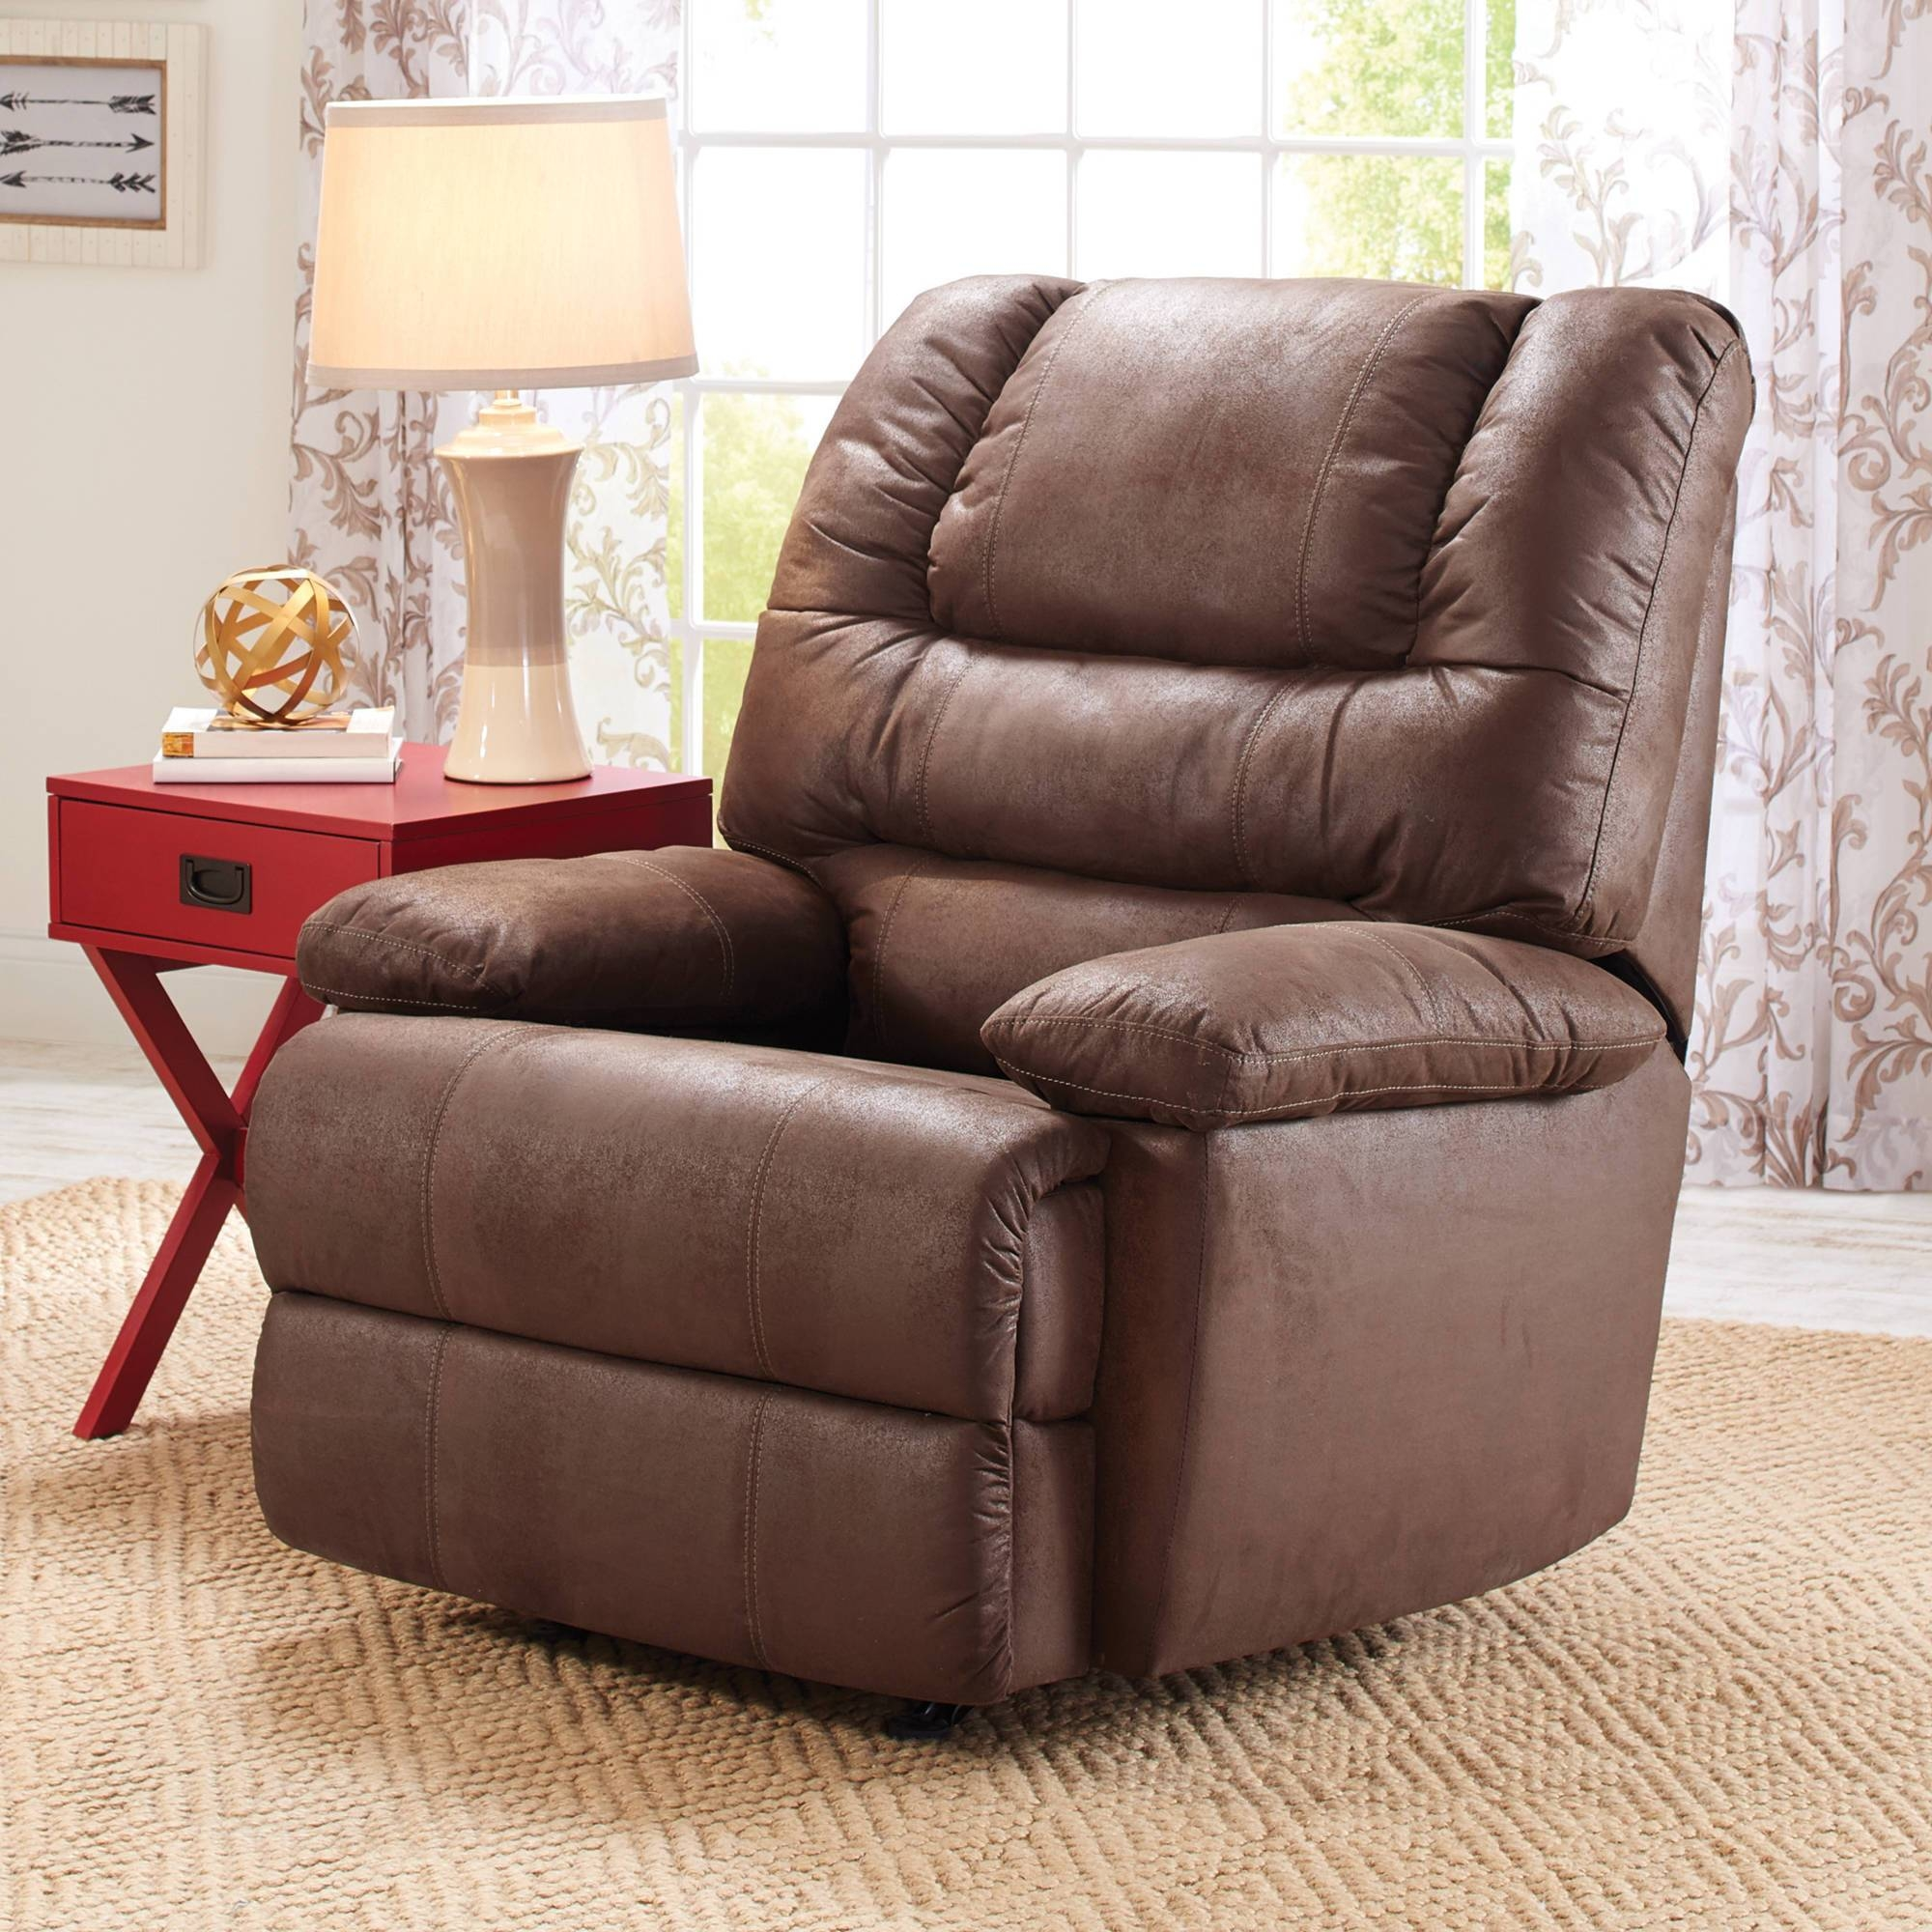 Round Sofa In Living Room Preferred Home Design with regard to Round Sofa Chair Living Room Furniture (Image 19 of 30)